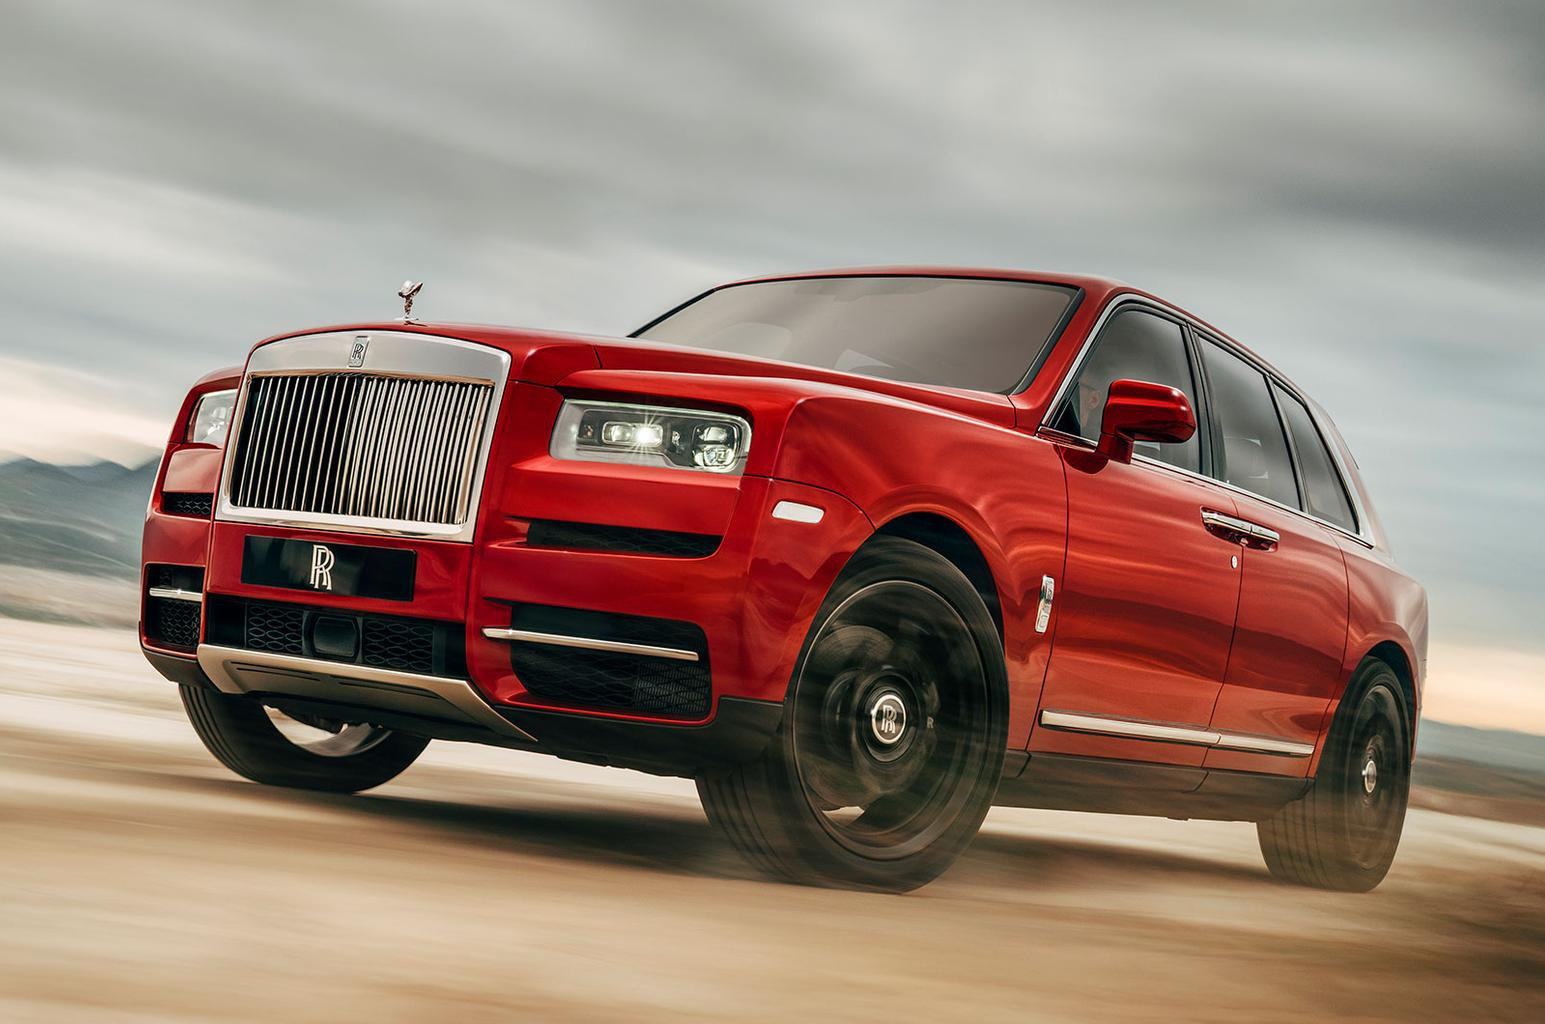 2018 Rolls-Royce Cullinan – price, specs and release date